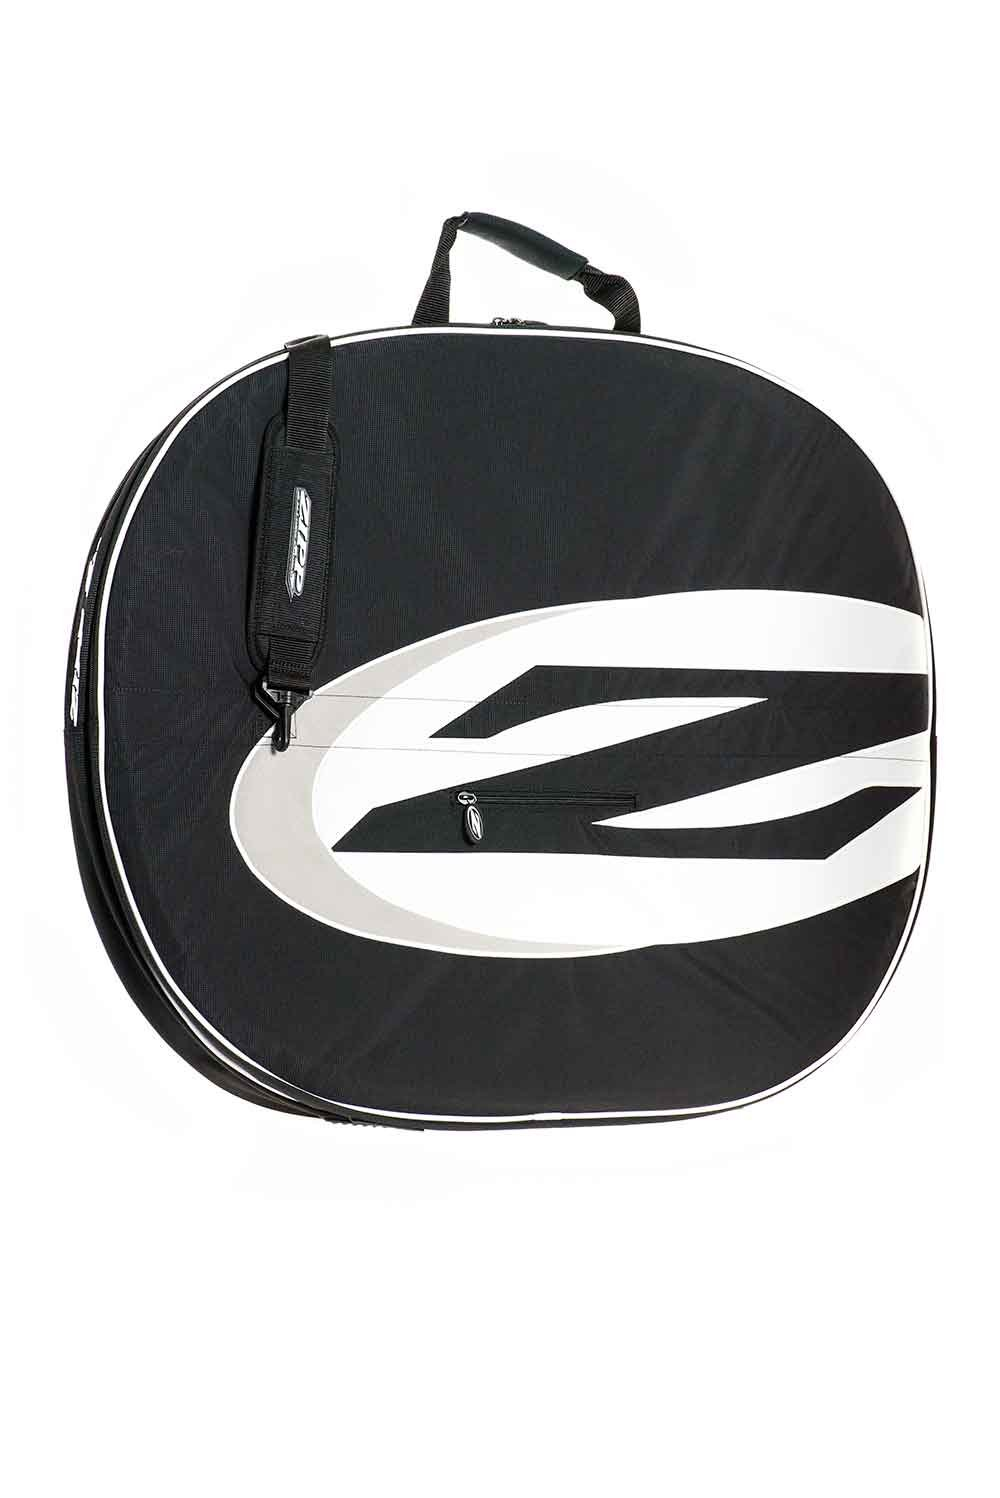 Zipp Speed Weaponry Zipp Double Padded Wheel Bag Holds Two Wheels